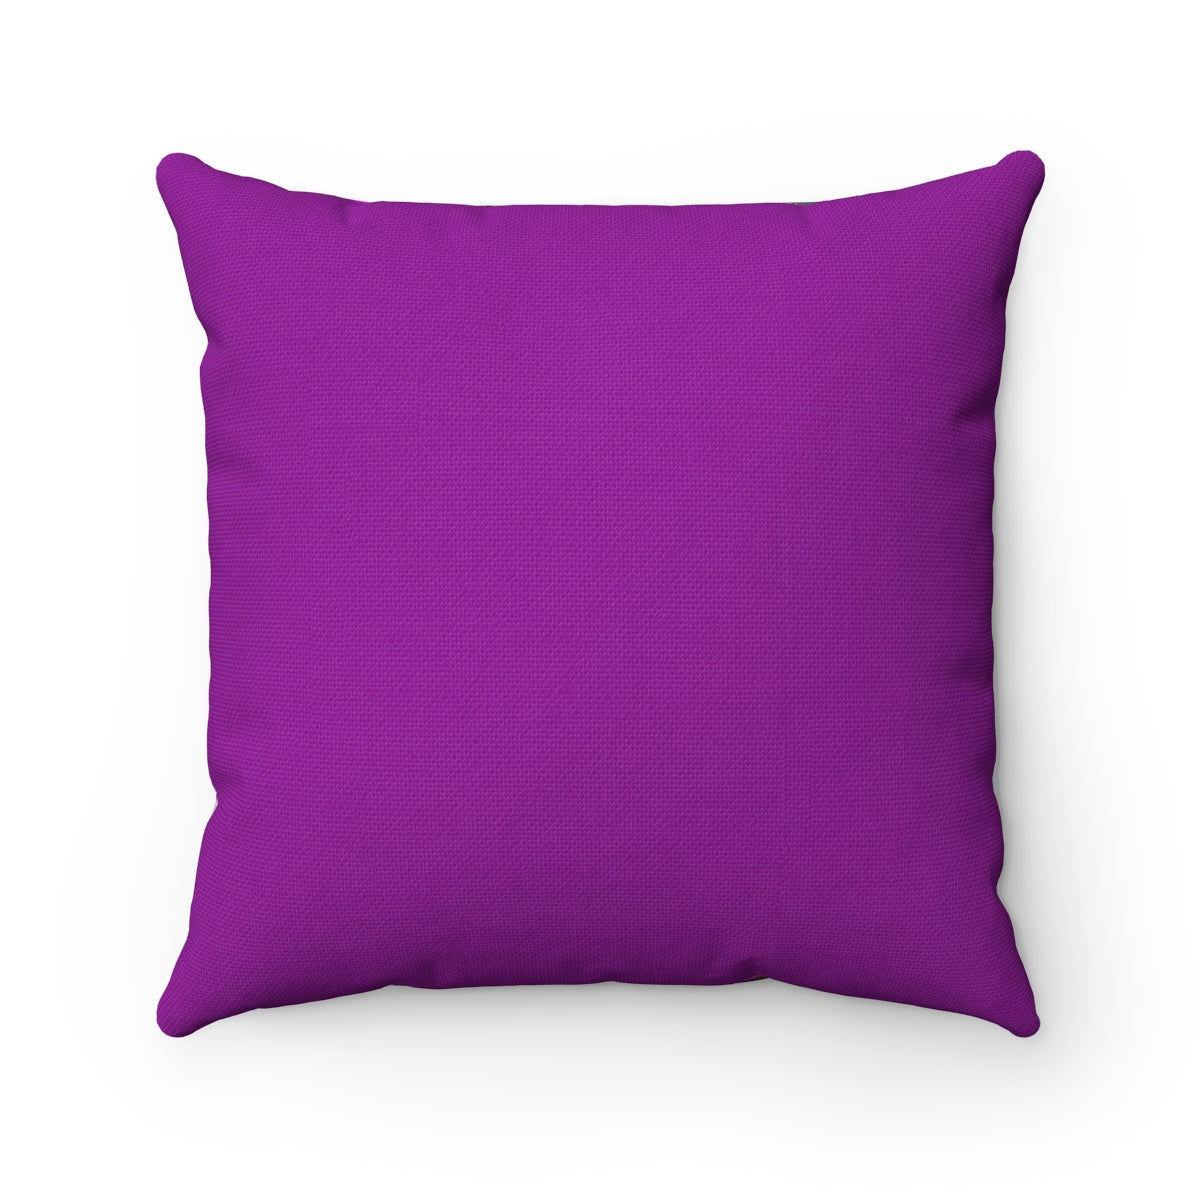 Black Girls Do Ballet Throw Pillow